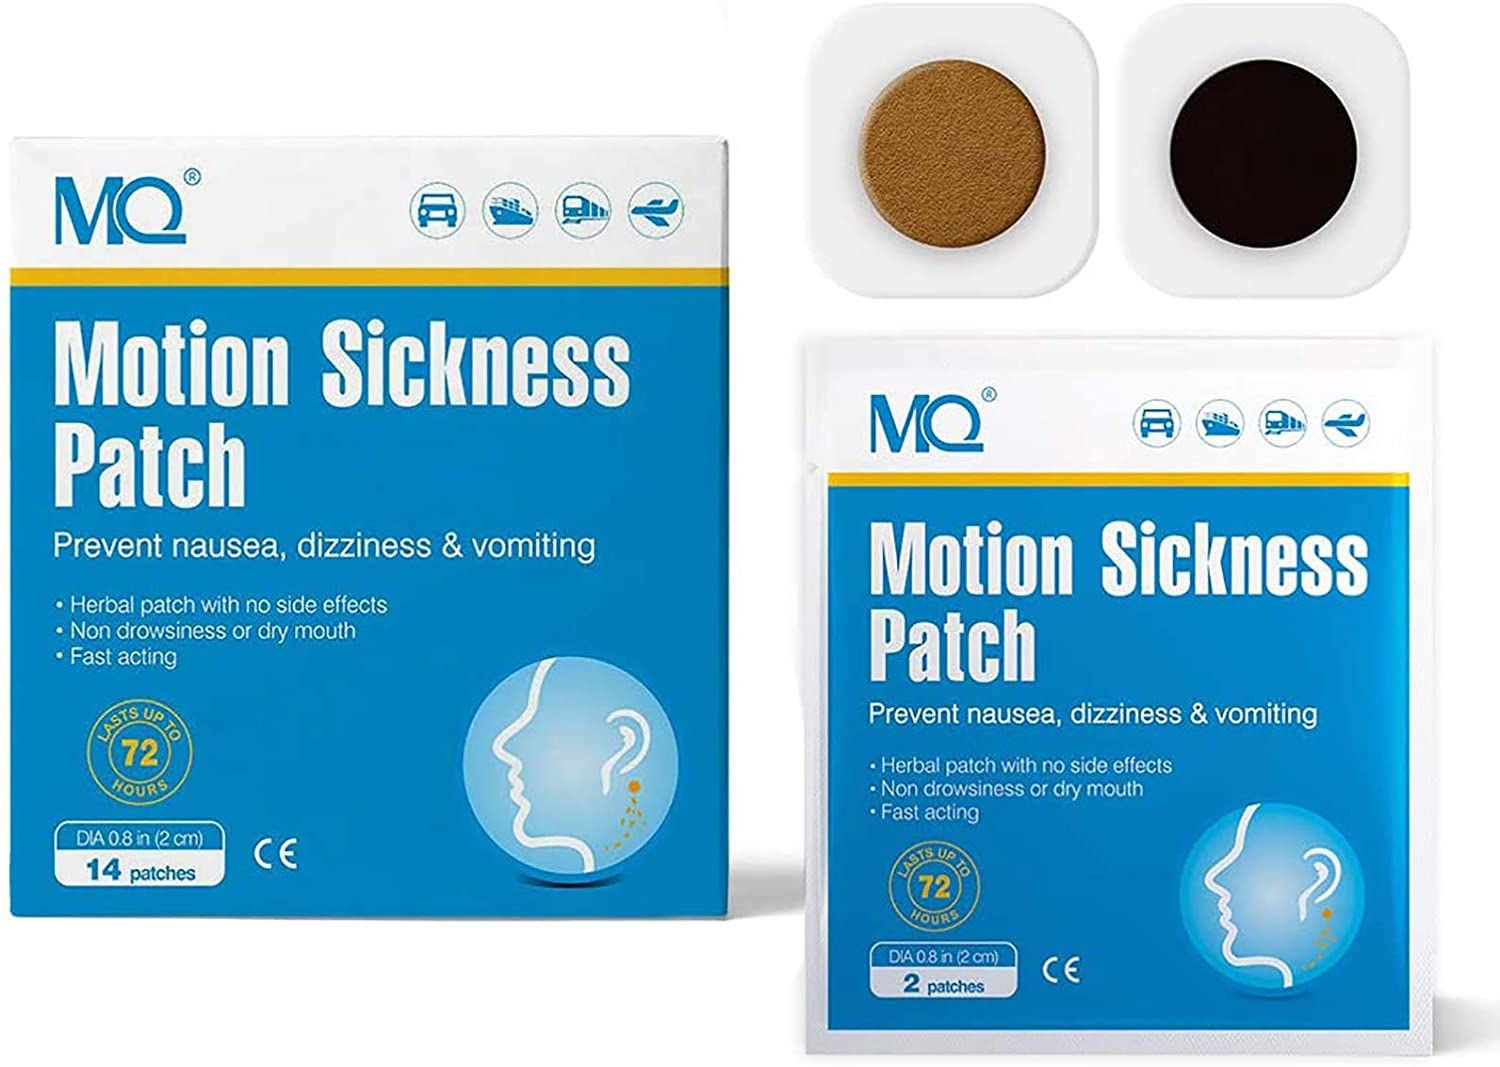 MQ 28ct Motion Sickness Patch for Car and Boat Rides, Cruise and Airplane Trips - Relieves Nausea, Dizziness & Vomiting from Seasickness, Fast Acting and No Side Effects